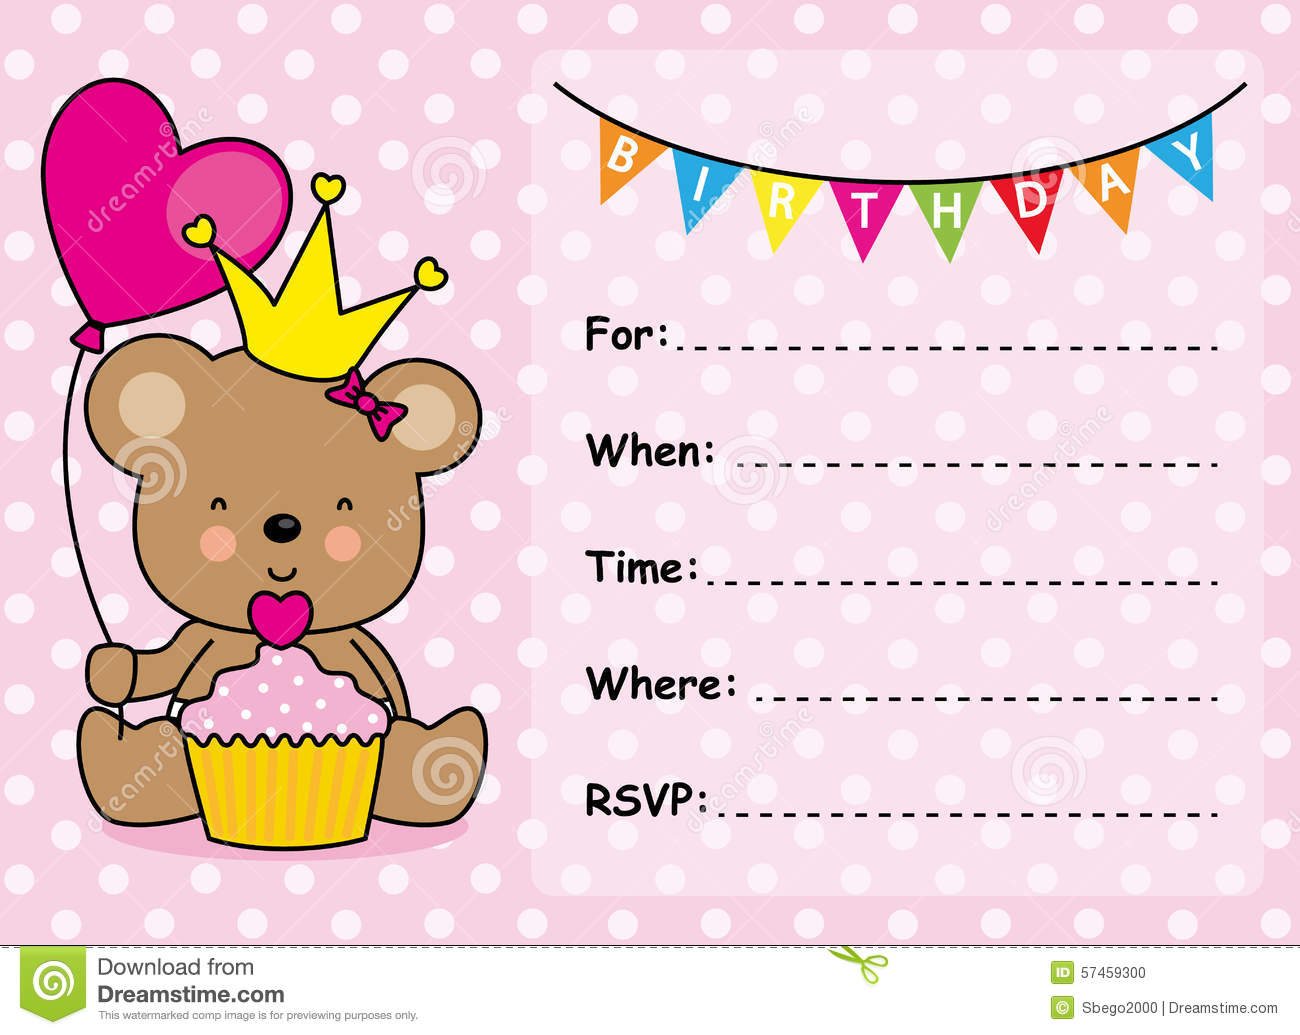 Birthday card invite targergolden dragon invitation card birthday girl stock vector image 57459300 stopboris Images